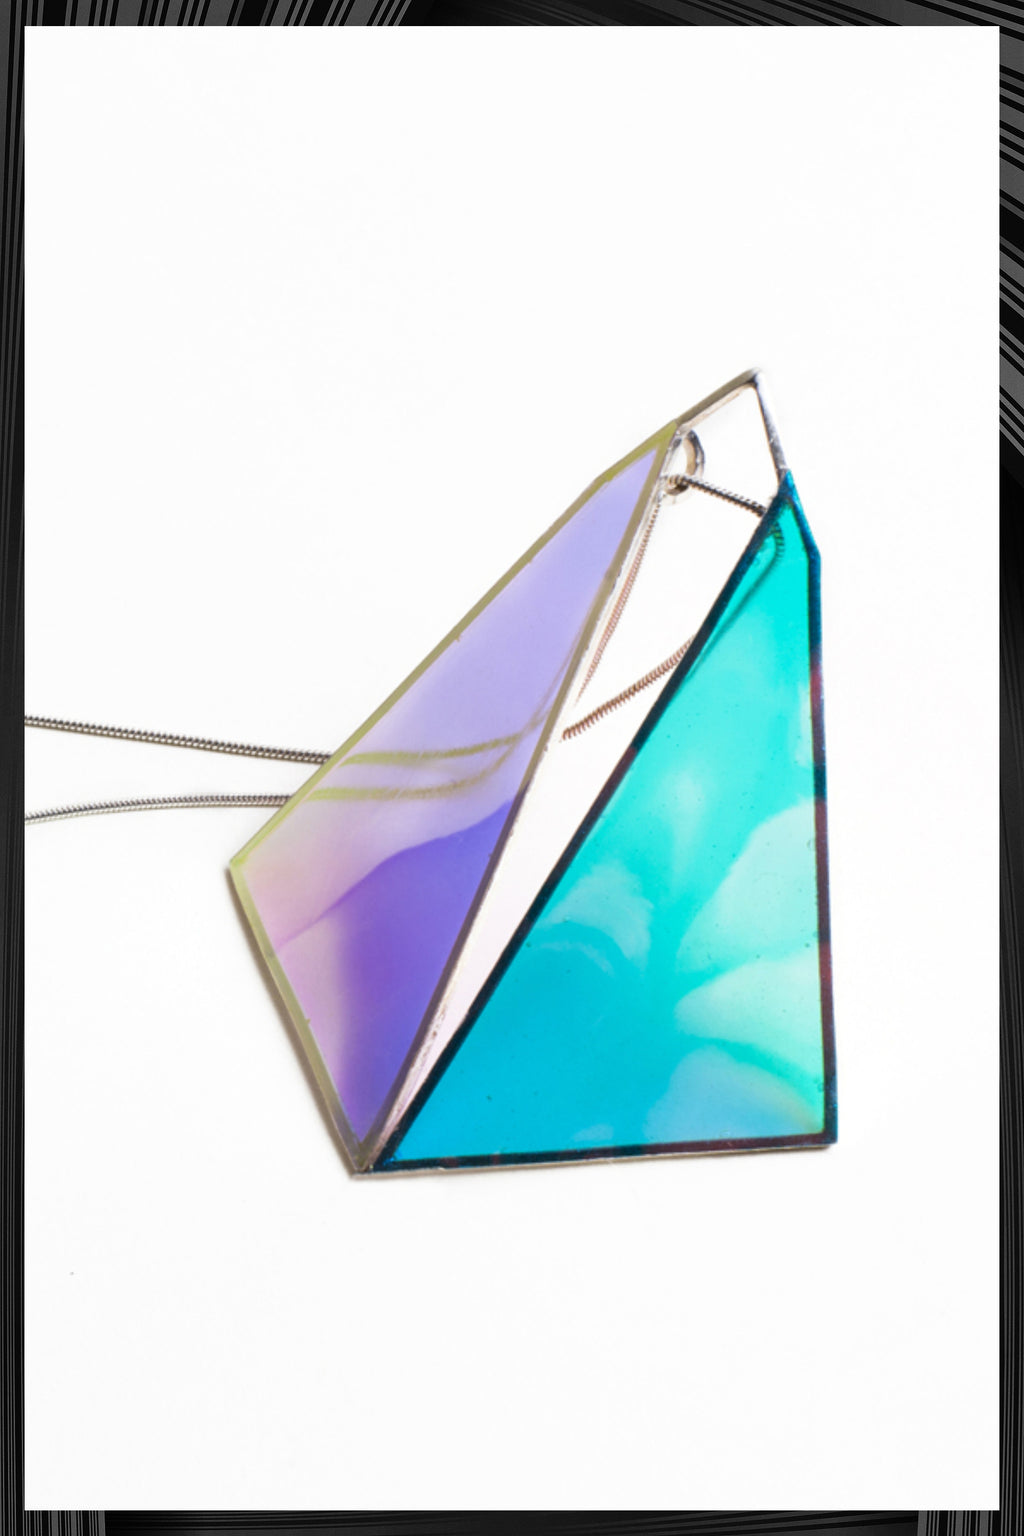 Kite Pendant | Free Delivery - 2-3 Week Shipping